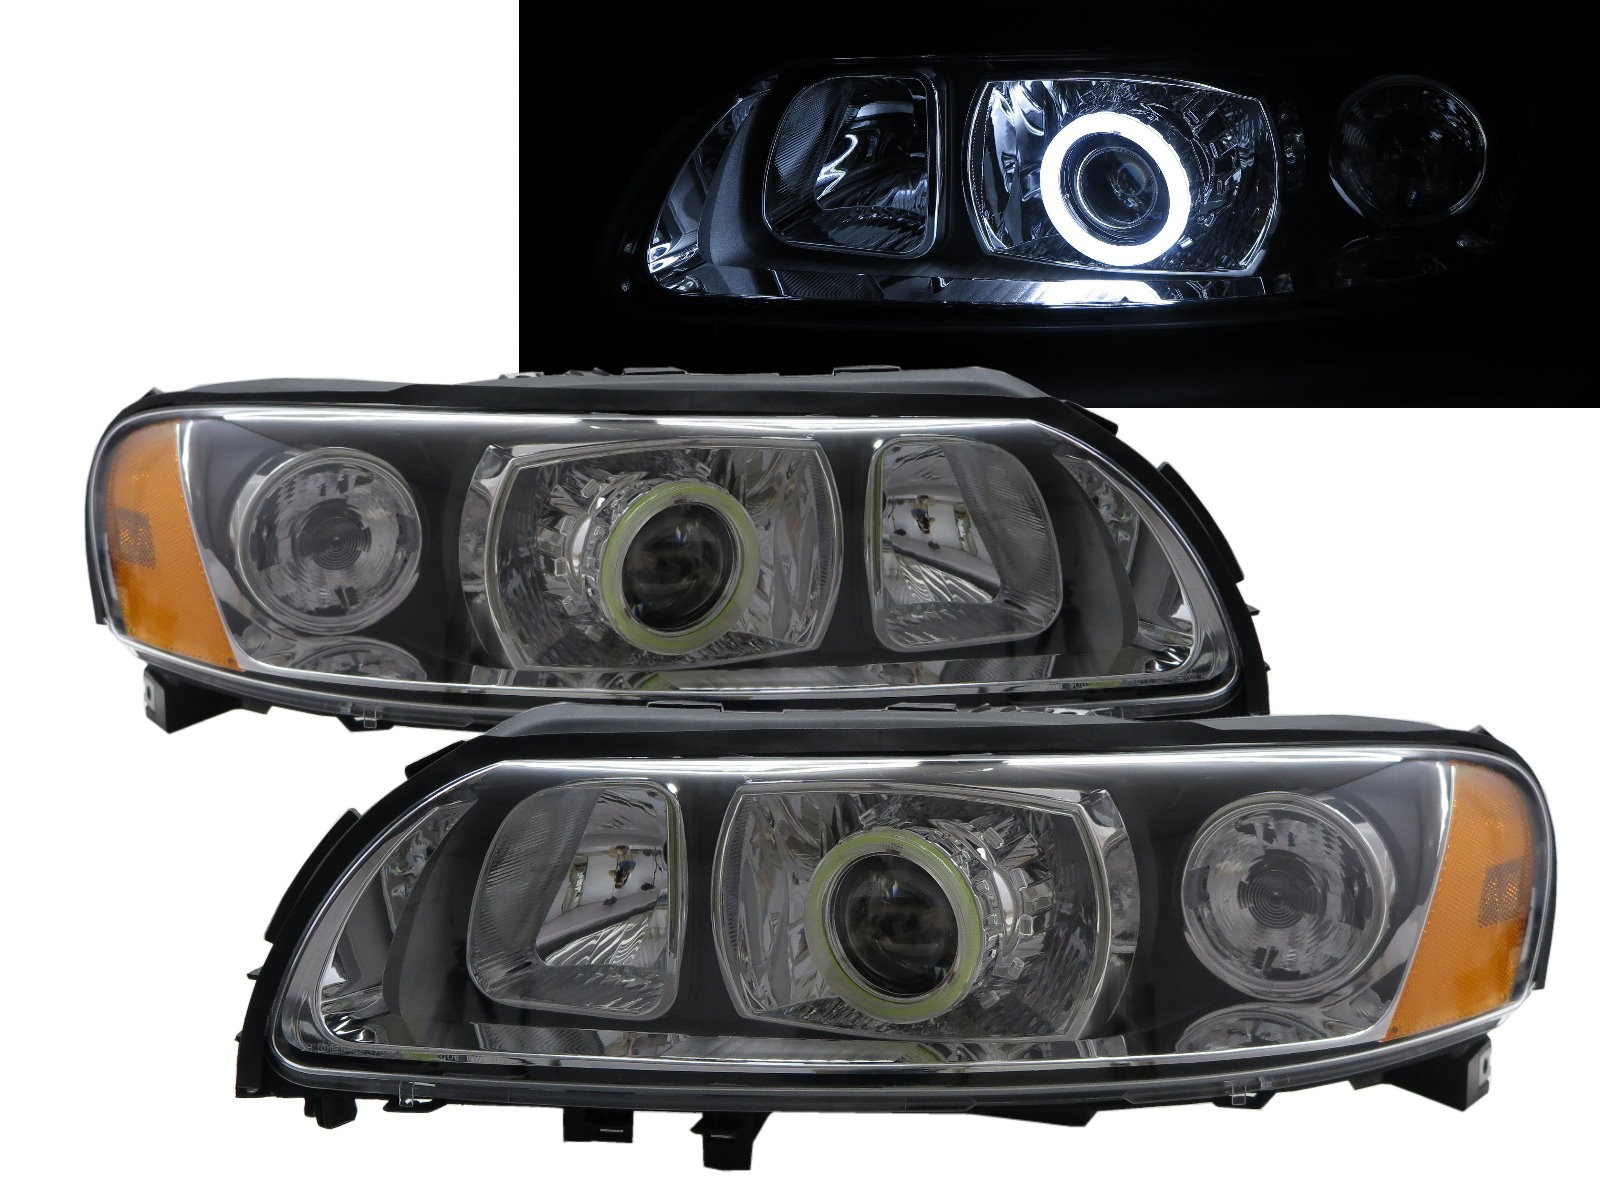 CrazyTheGod S60 First generation 2004-2009 Sedan 4D COB Projector Headlight Headlamp Black for VOLVO LHD